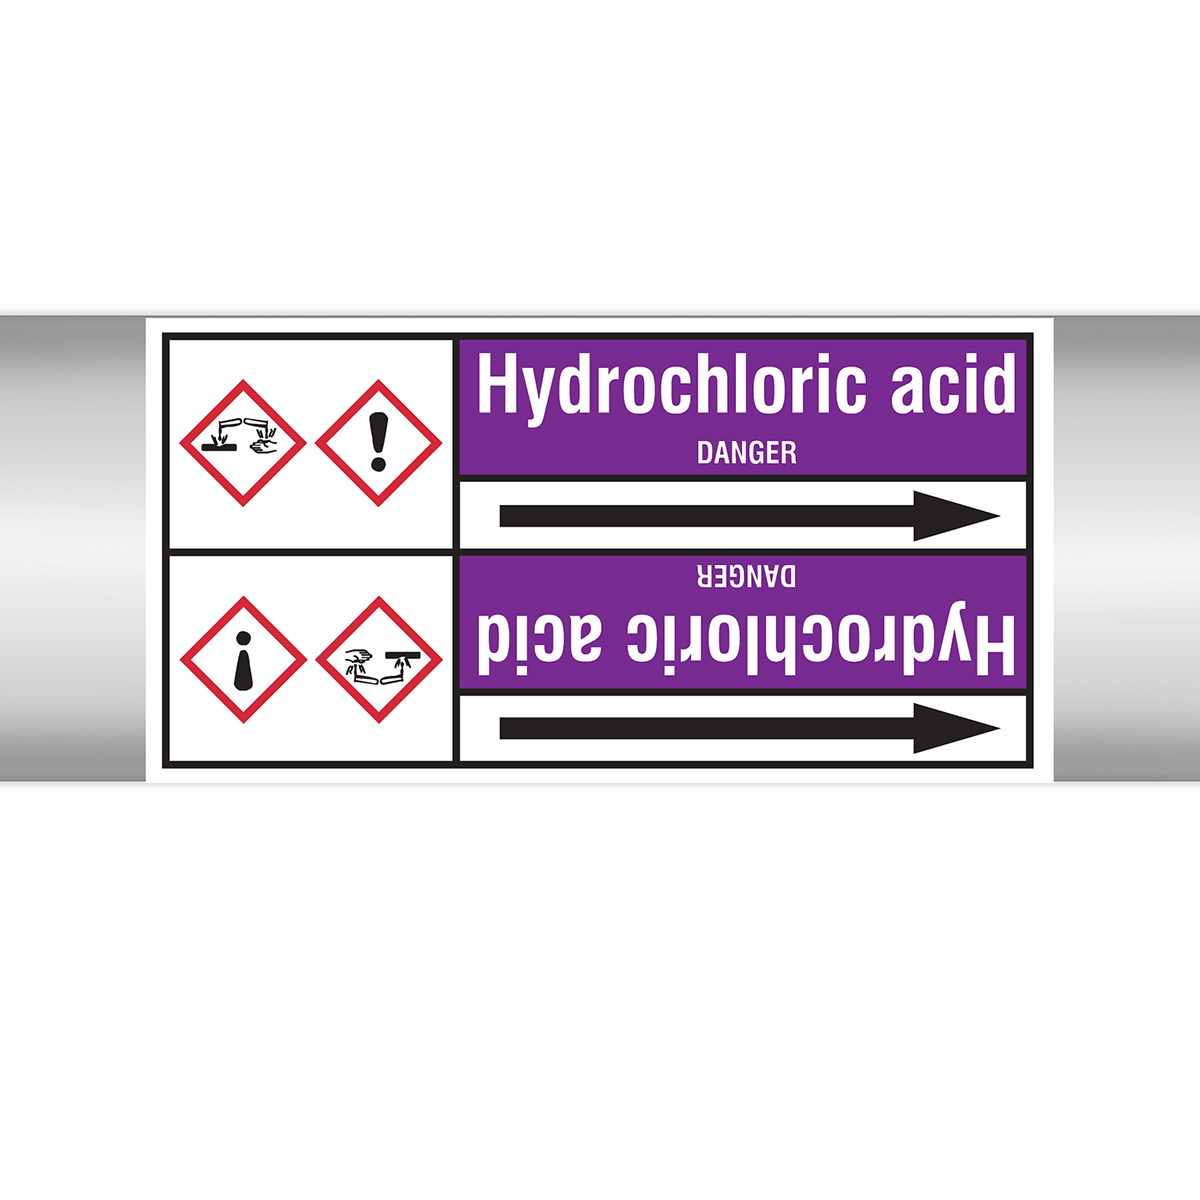 Roll Form Liner-less Type 2 - Hydrochloric Acid